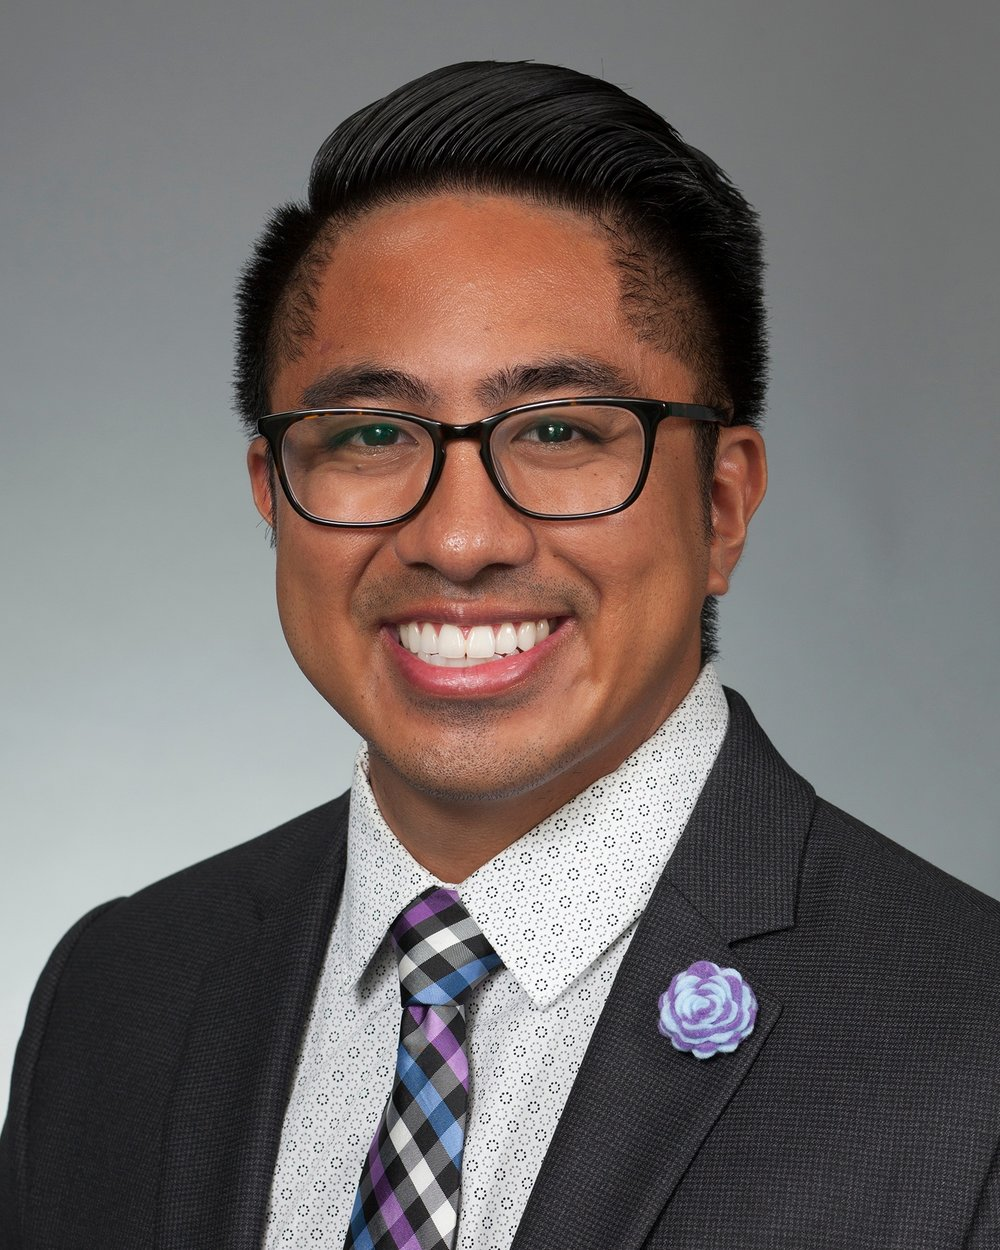 Dr. Kyle Viloria - He is a member of the American Dental Association, the Academy of General Dentistry, the North Carolina Dental Society, and the American Academy of Cosmetic Dentistry. Dr. Viloria takes many continuing education courses each year to stay abreast of the latest advances in the dental field.